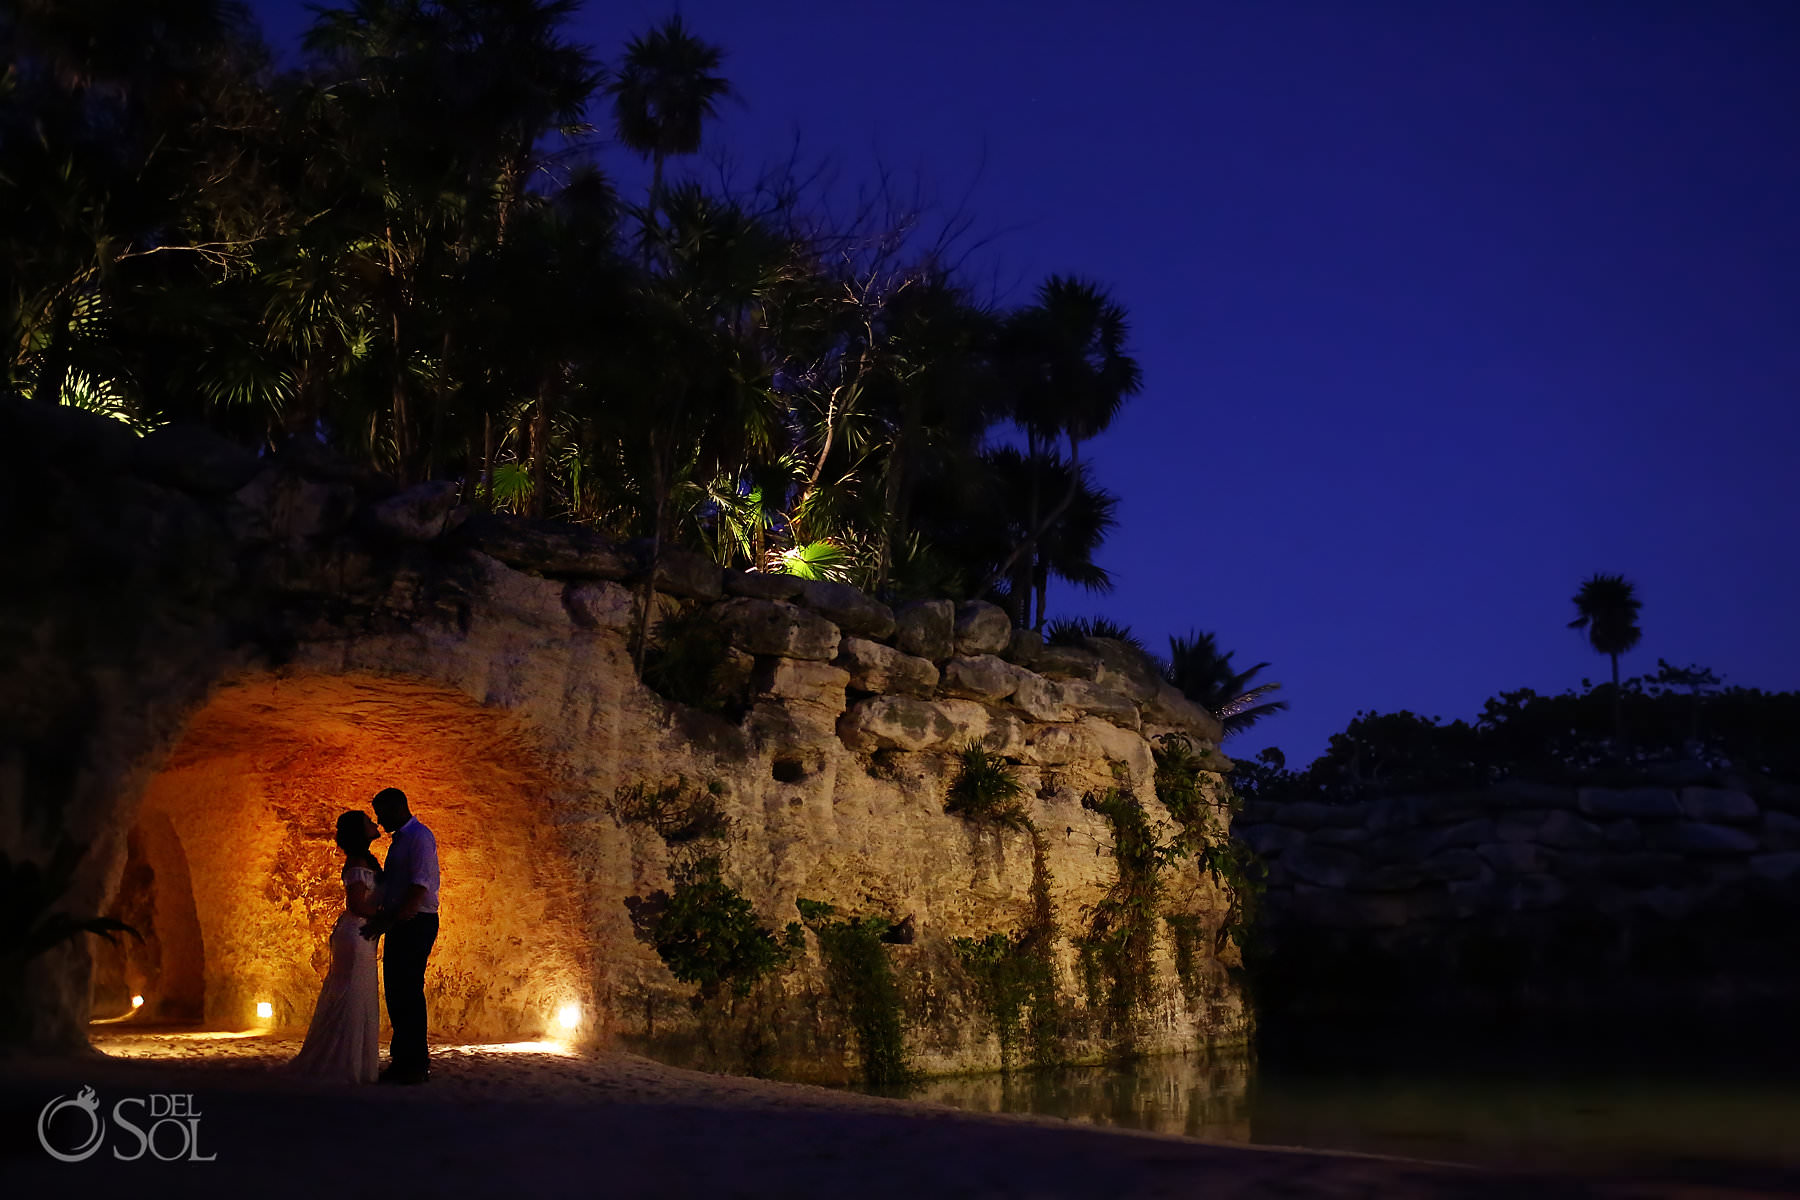 Hotel Xcaret Mexico Wedding reception location Cuevitas Caleta portrait